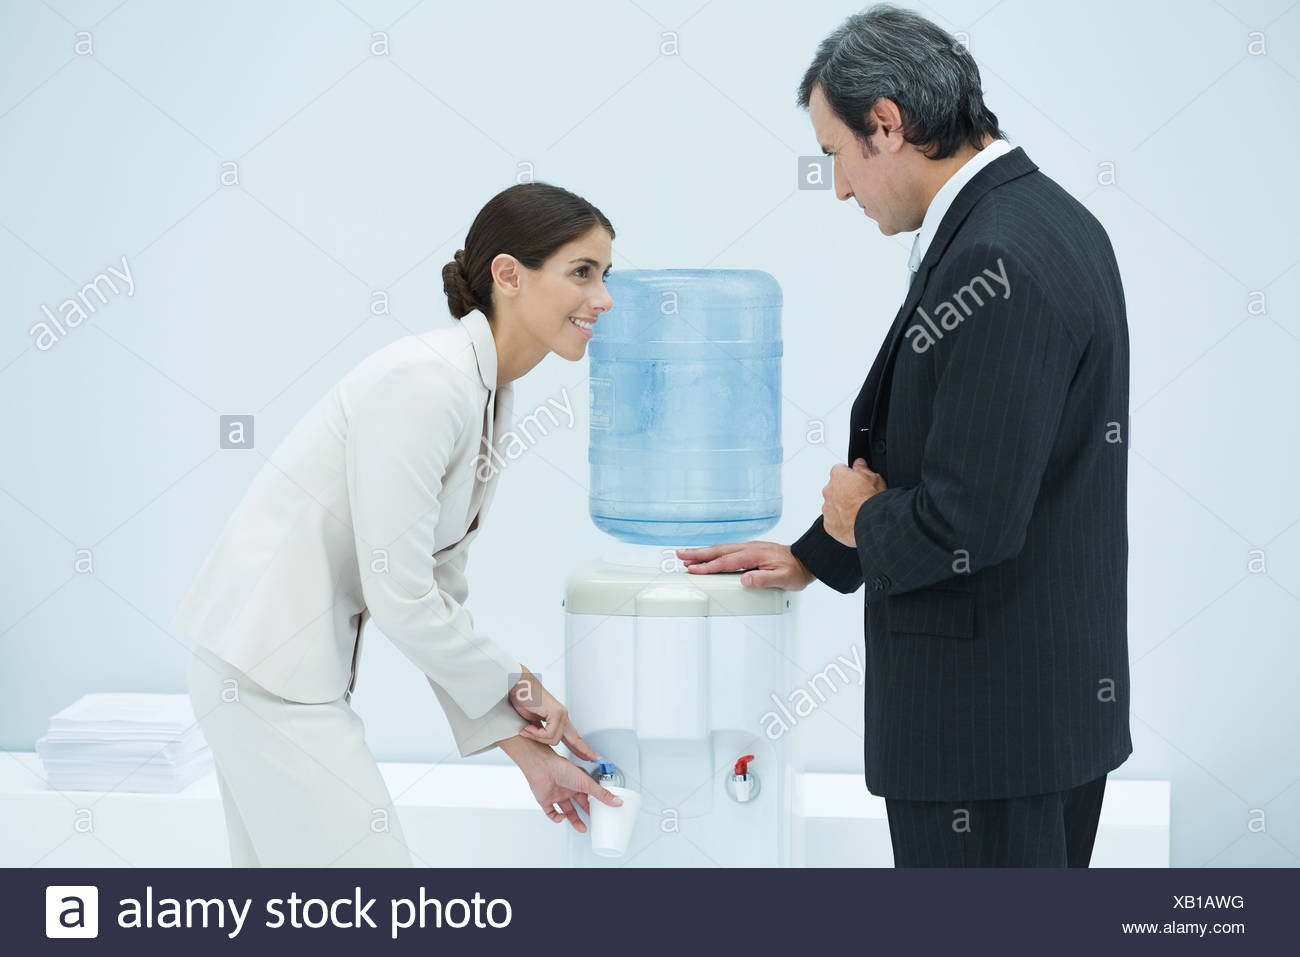 Two professionals chatting beside water cooler, woman filling disposable cup - Stock Image